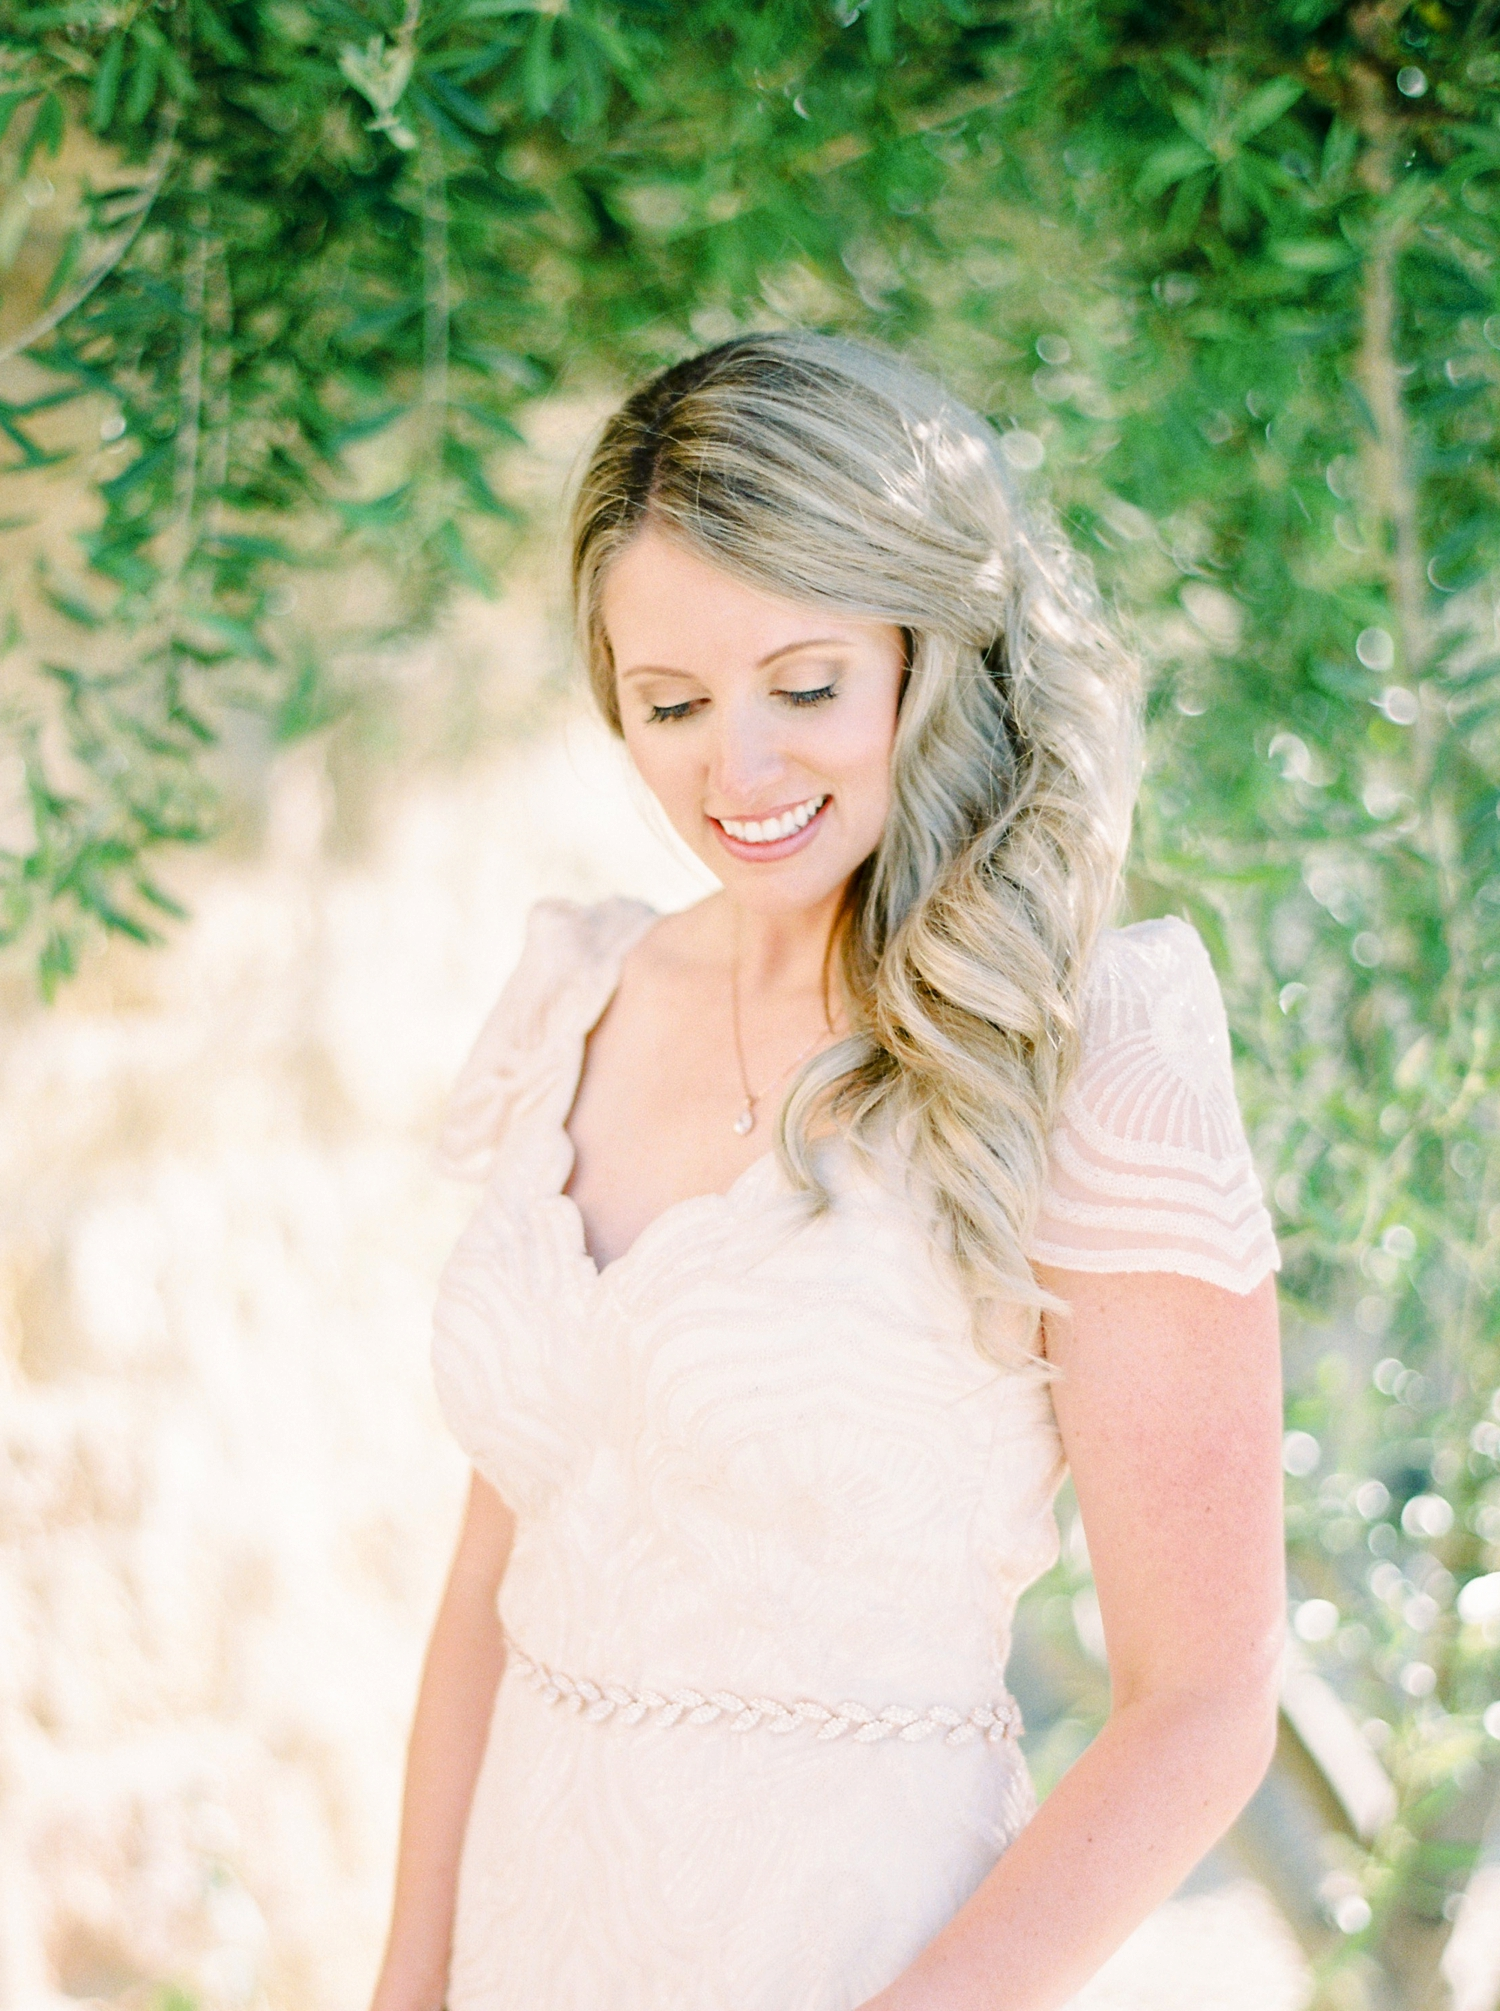 Sunstone Winery and Villa | California Wedding Photographers | Santa Barbara Wedding Photography | Santa Ynez Wedding | Justine Milton Photographer | Fine Art Film | Bridal Portraits